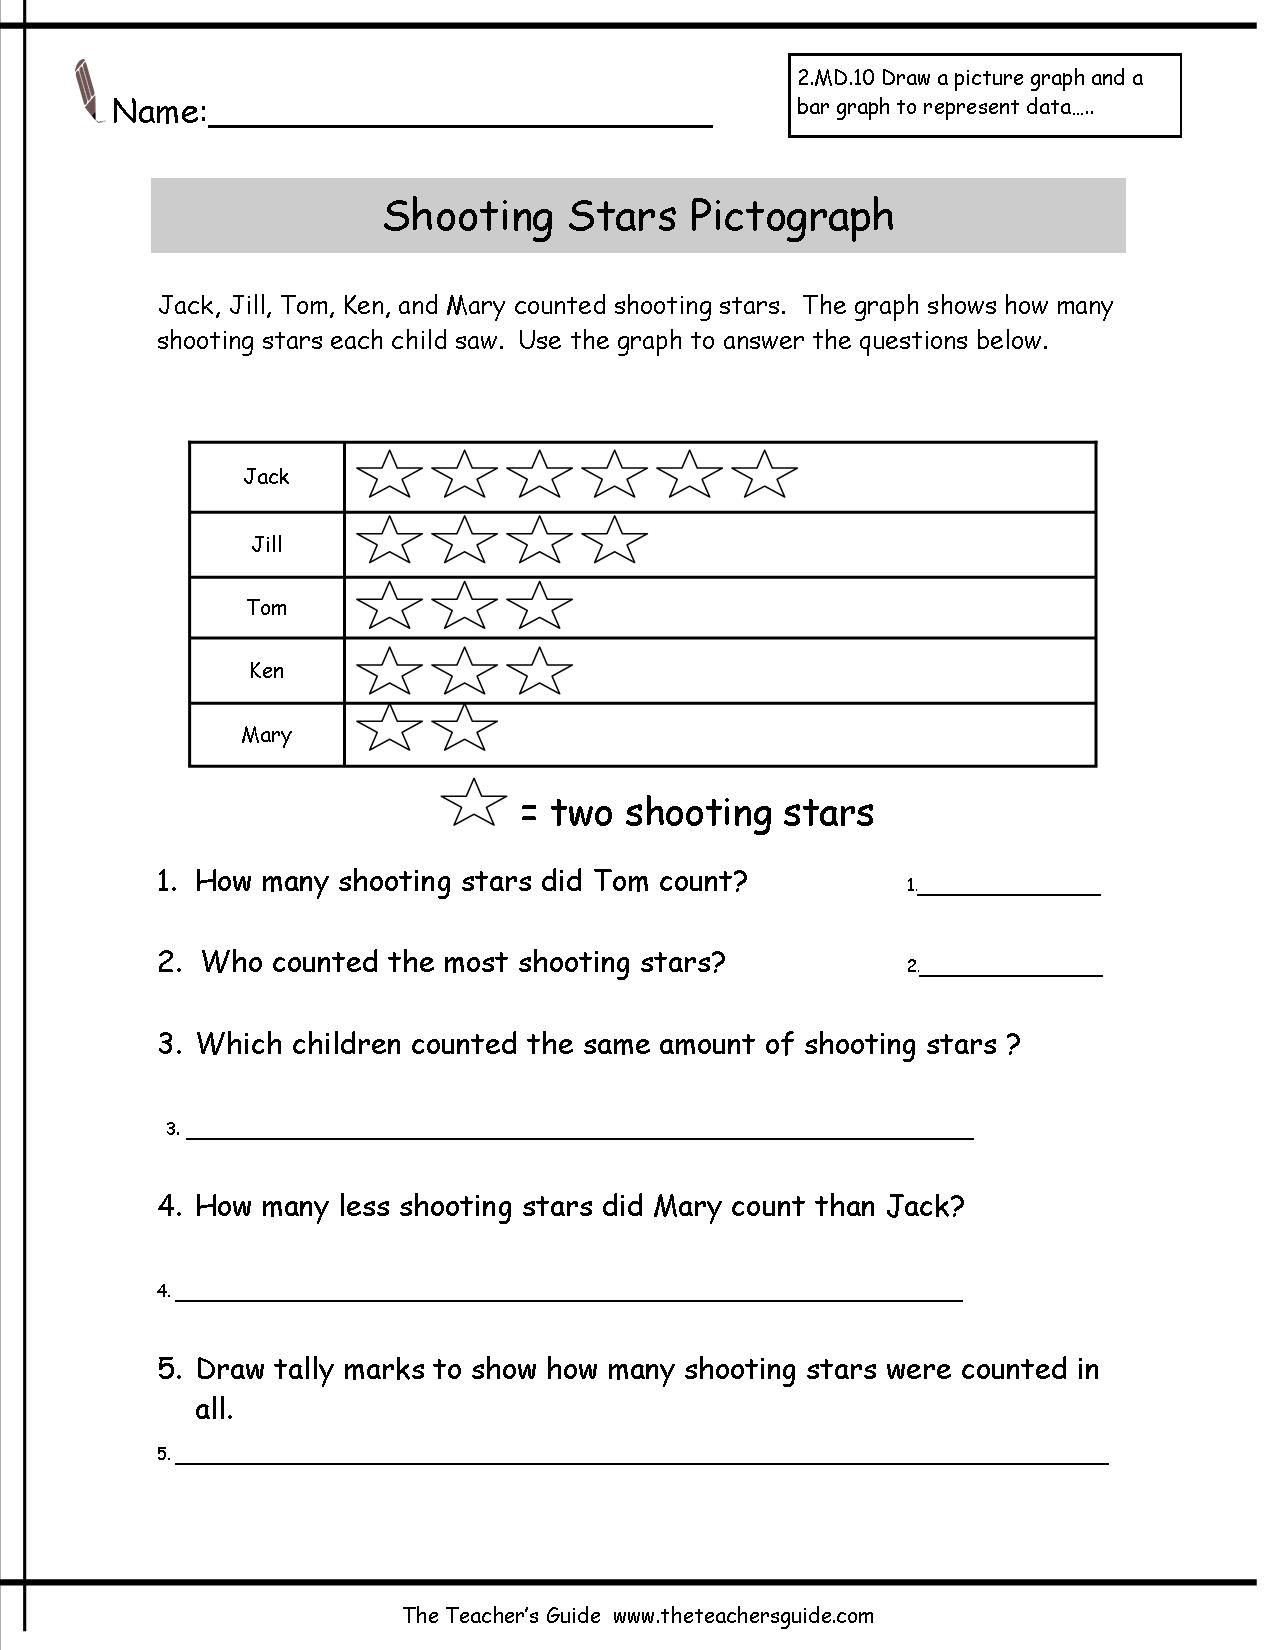 Worksheet Pictographs Worksheets Reading And Creating